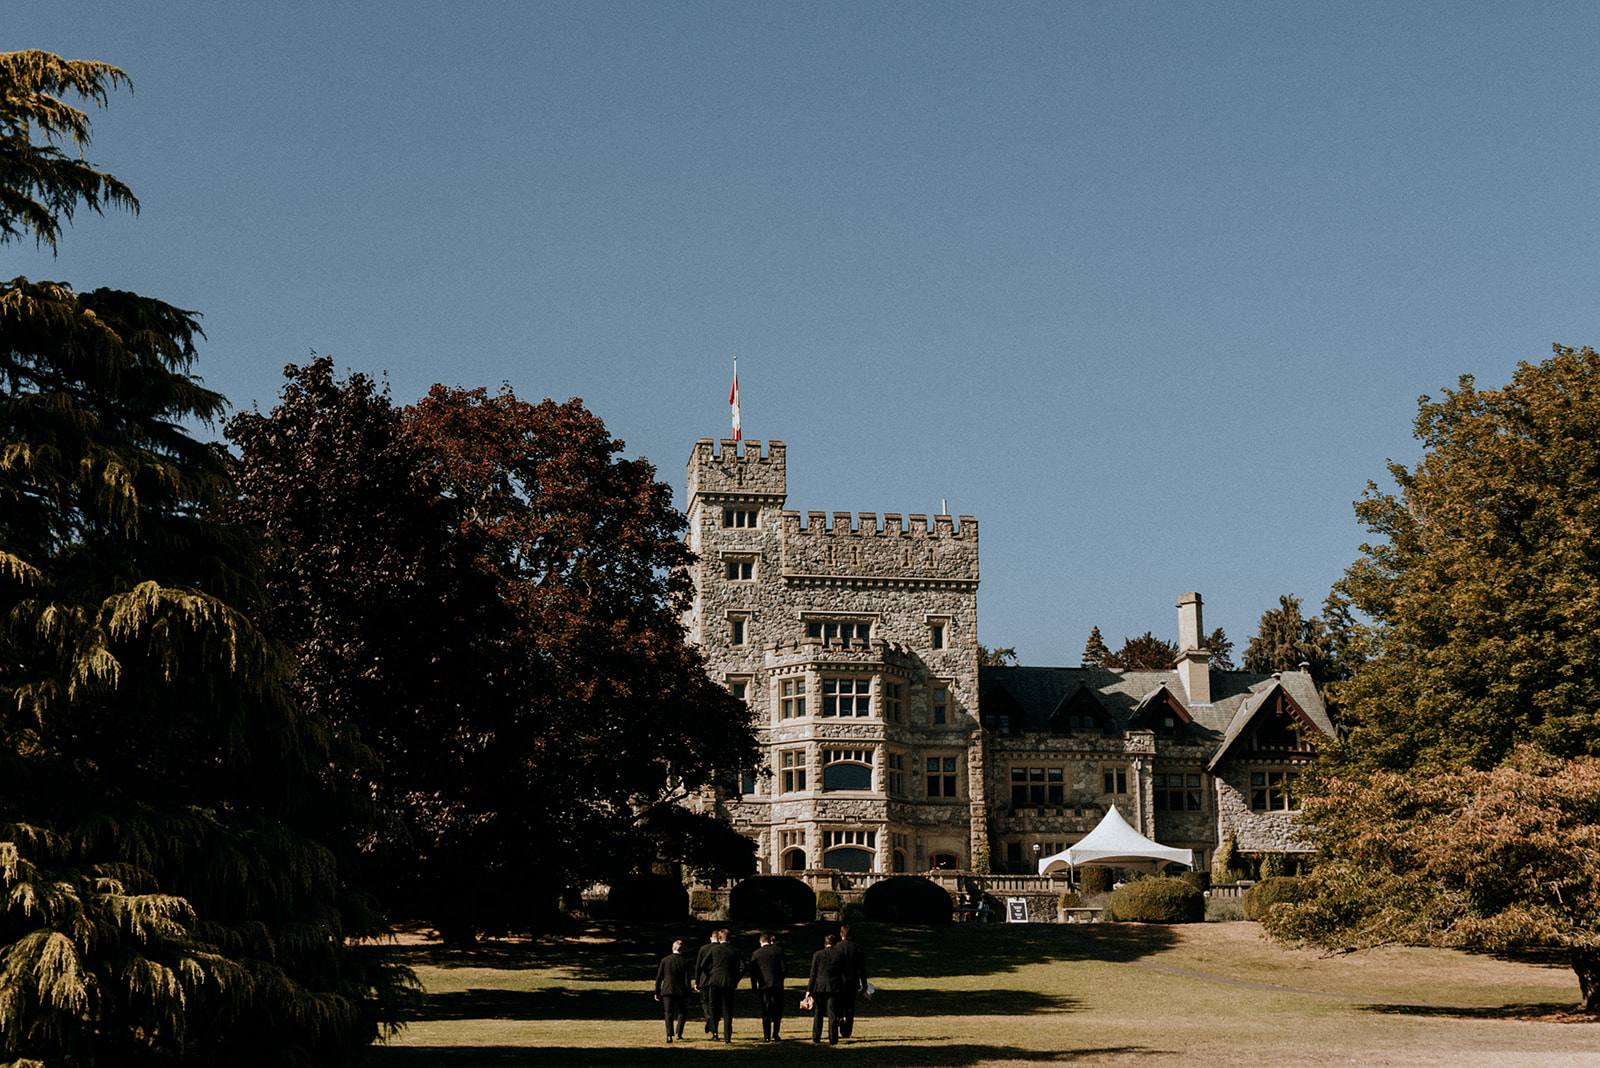 Hatley Castle Wedding - Victoria Wedding Photographer Kim Jay-06.jpg